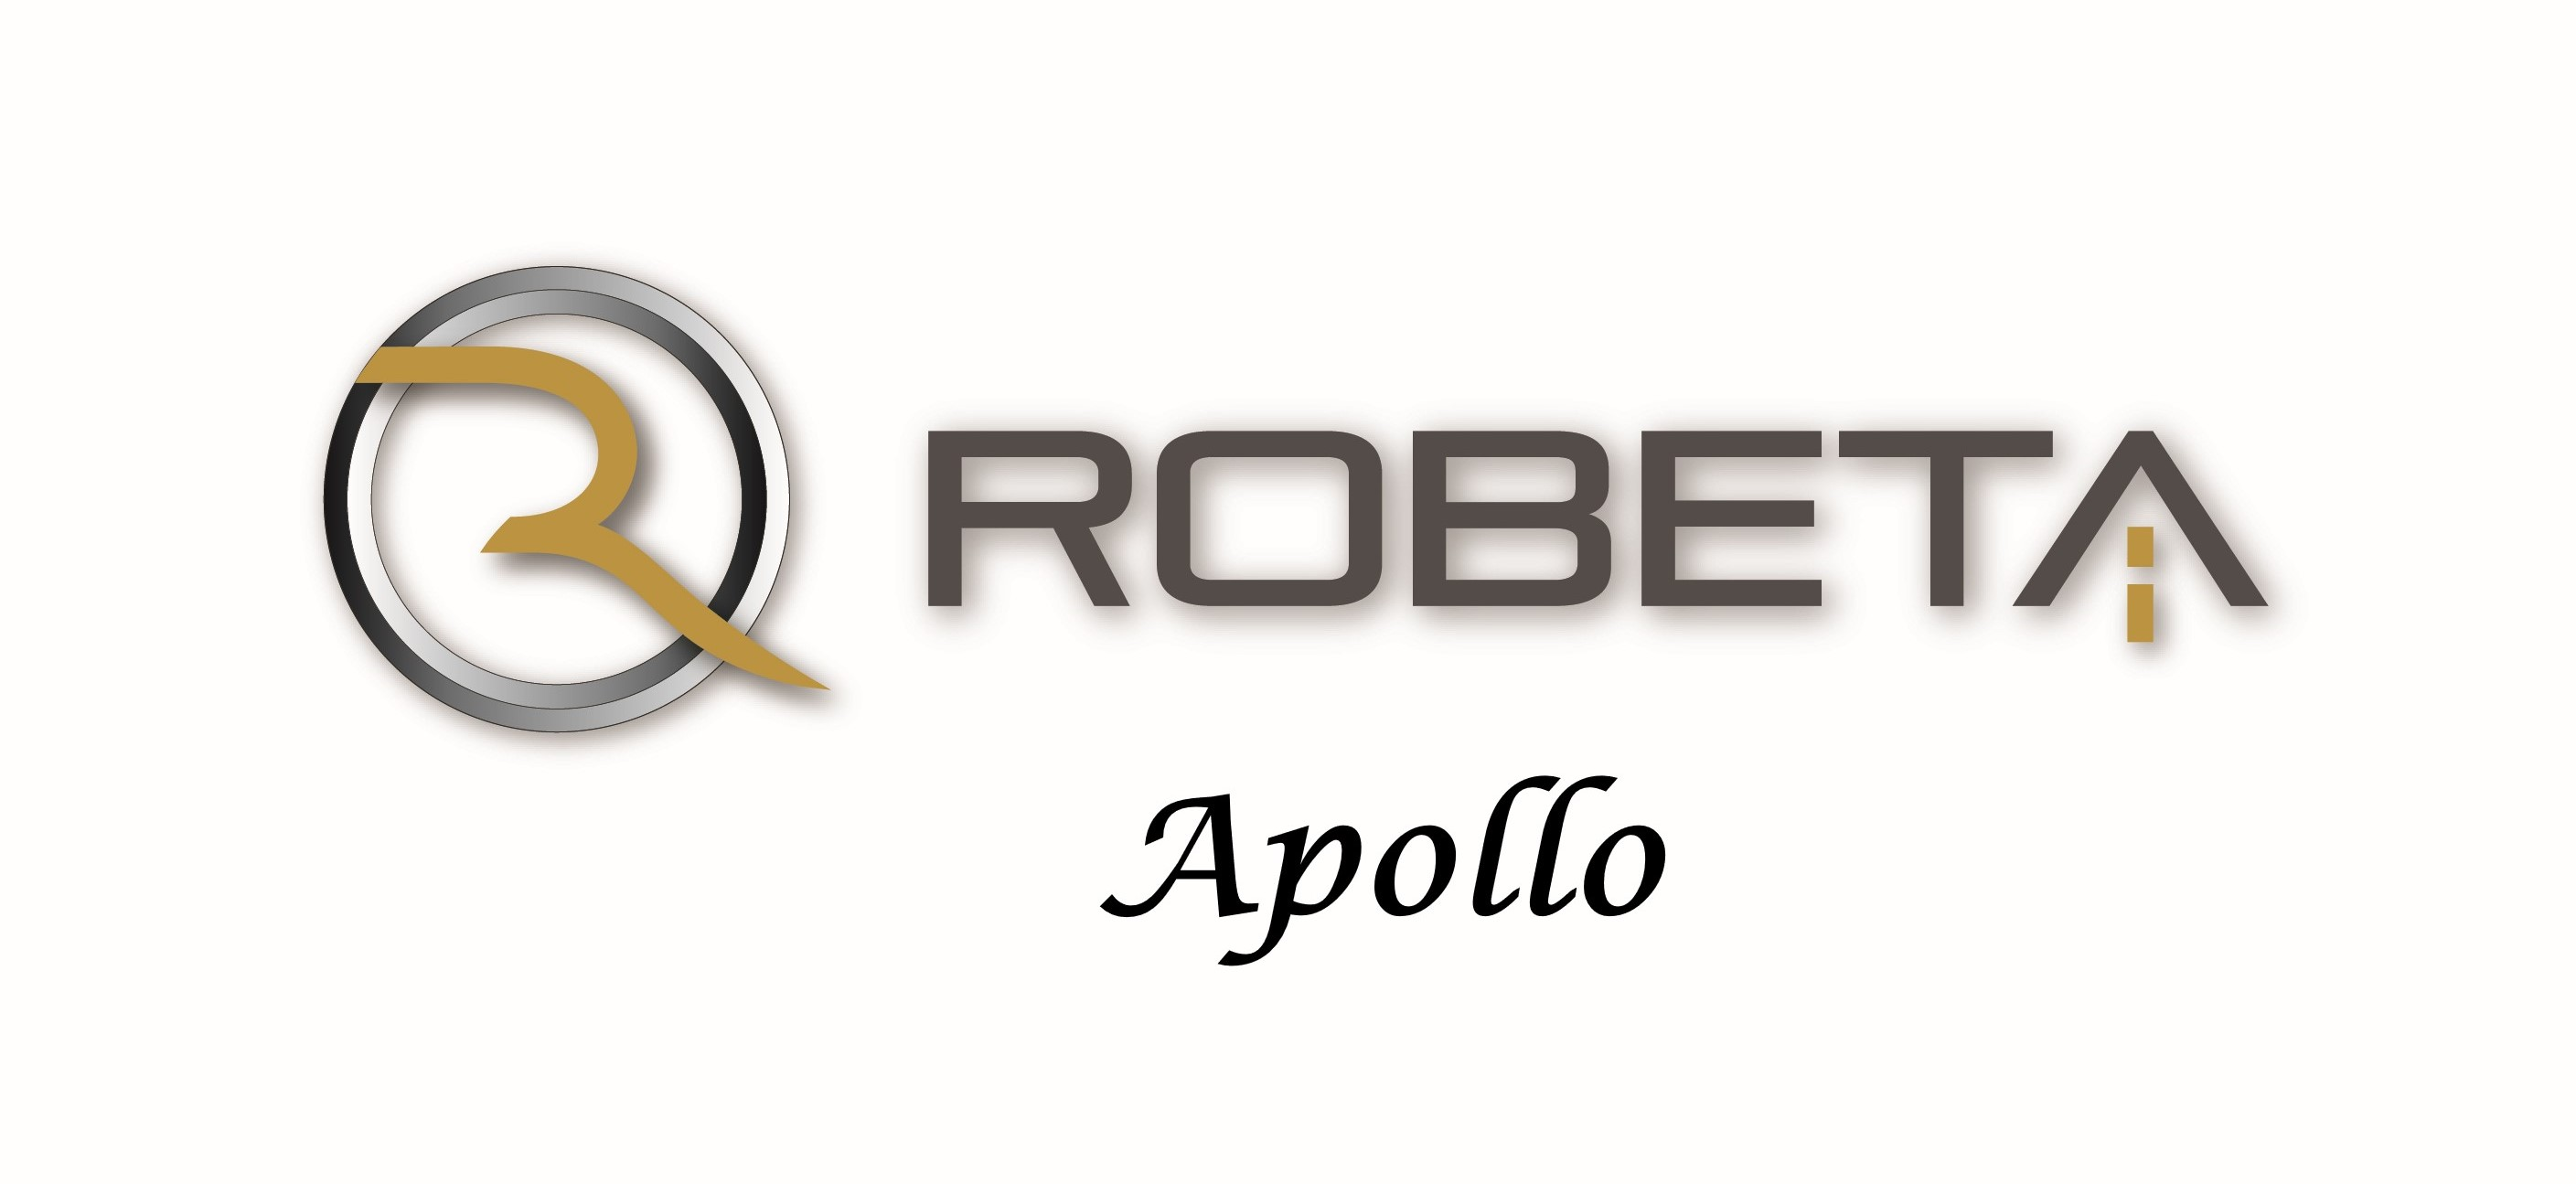 ROBETA Apollo (2)